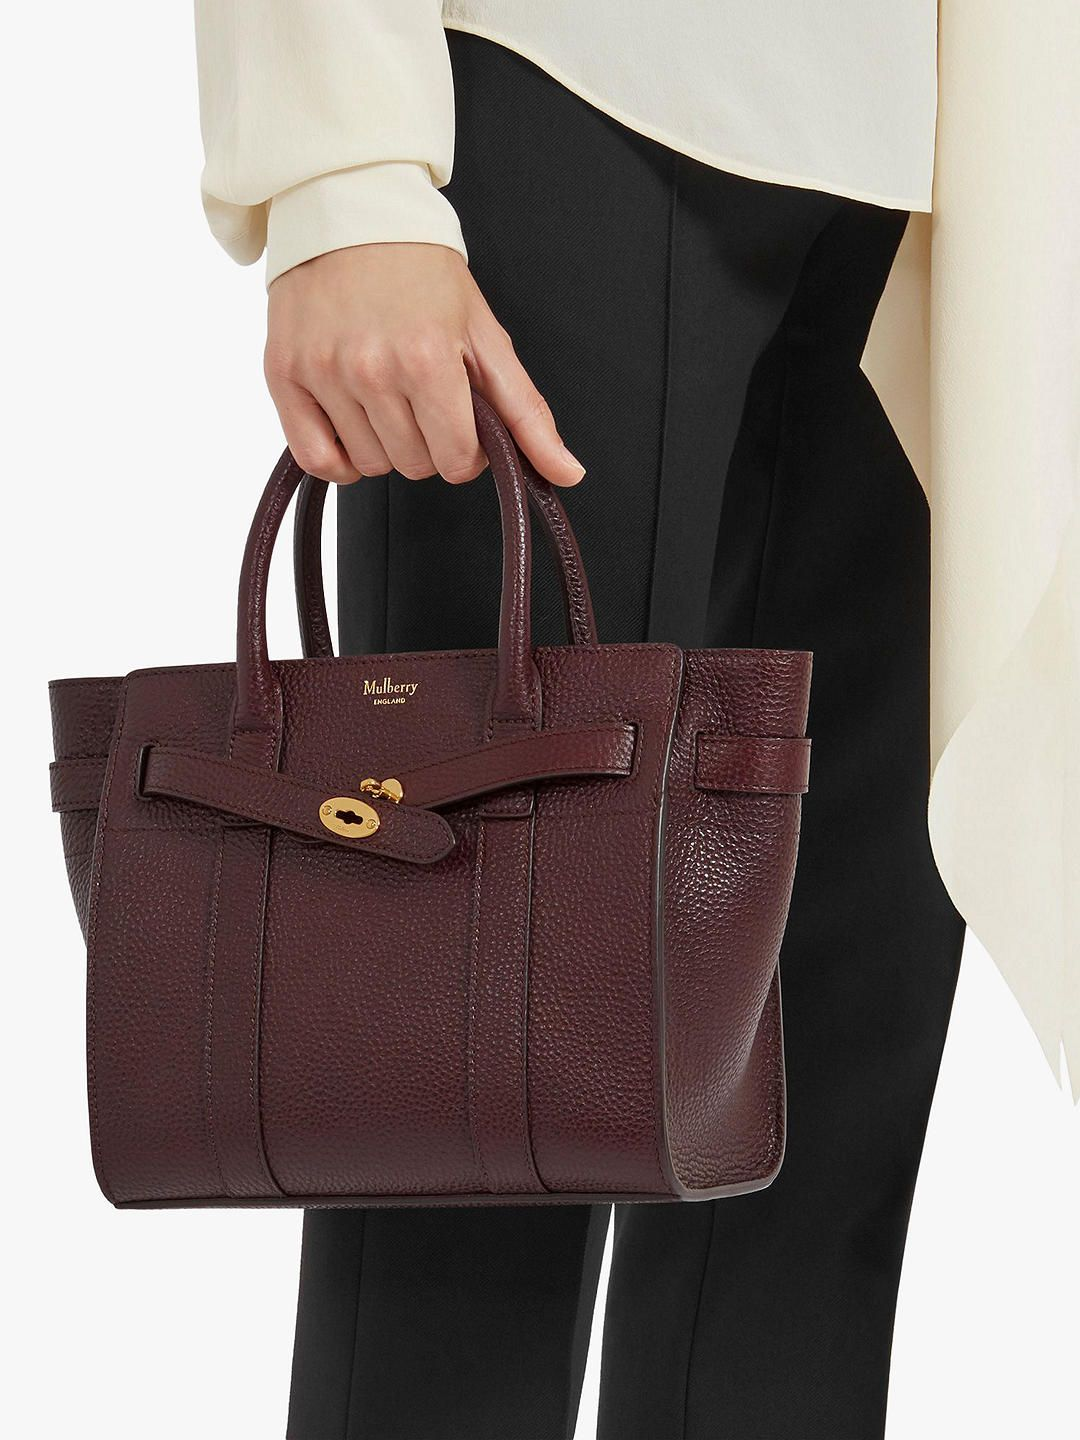 5469318a2d6 Mulberry Mini Bayswater Zipped Grain Veg Tanned Leather Tote Bag ...